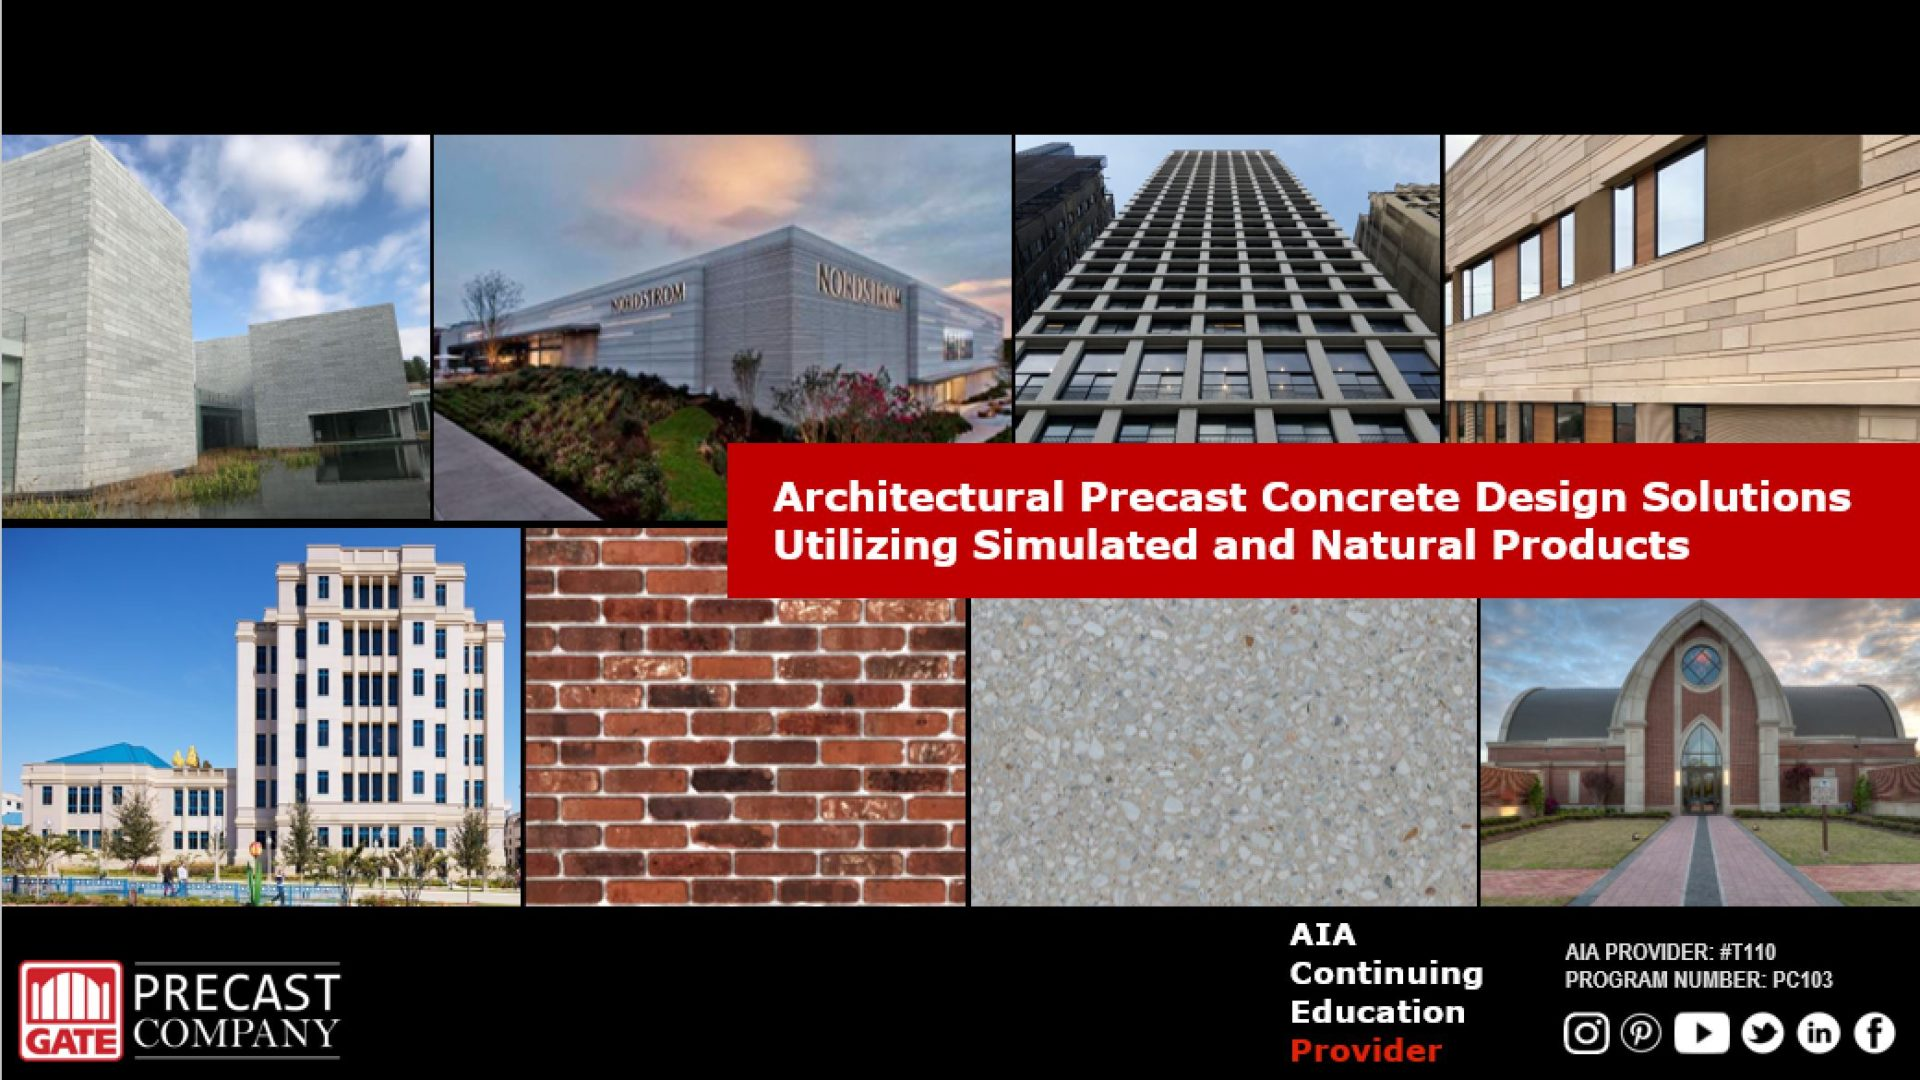 PC103 Architectural Precast Concrete Design Solutions Utilizing Simulated and Natural Products